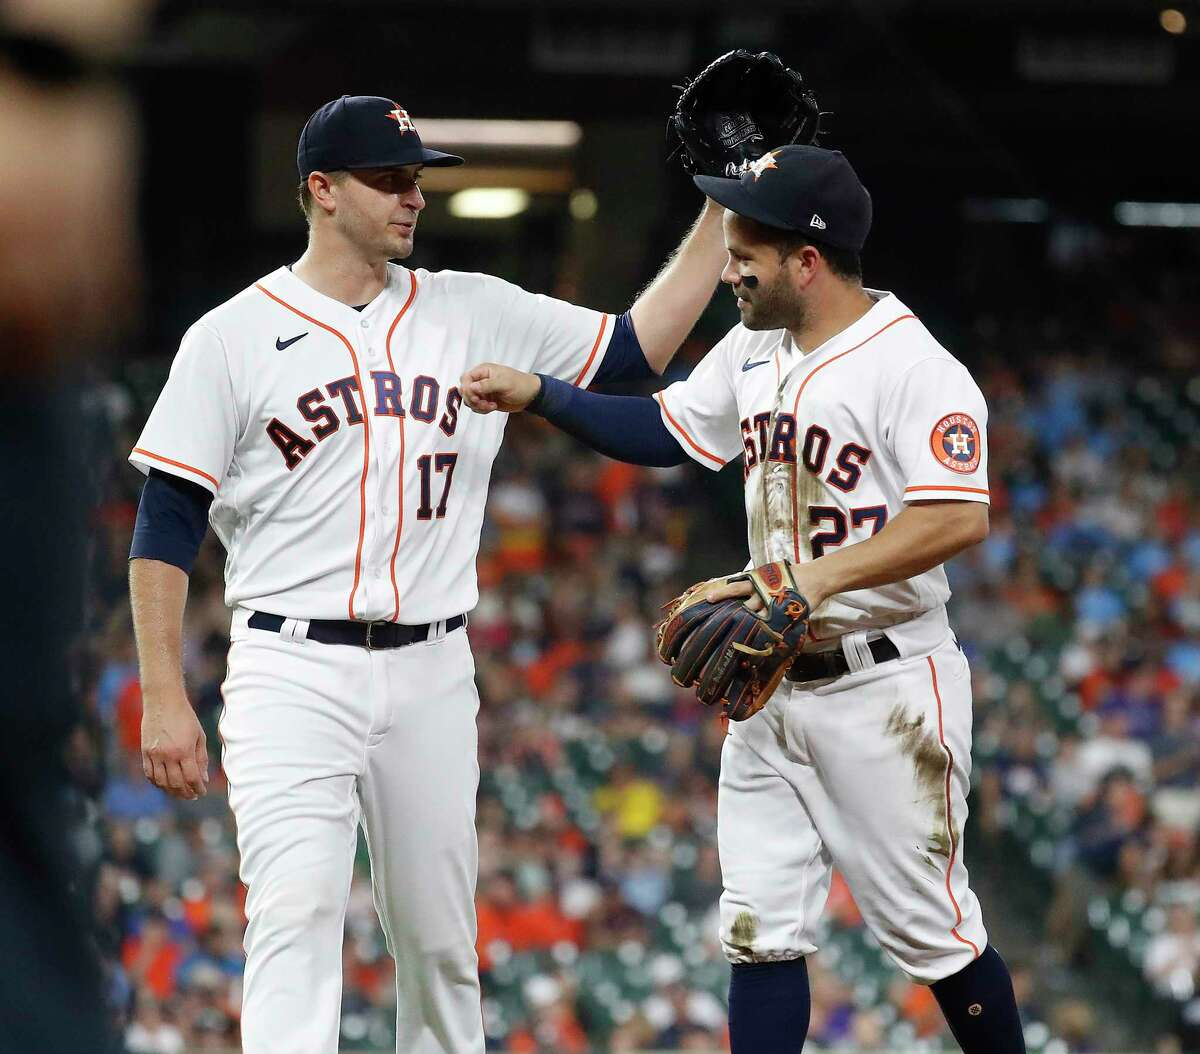 Houston Astros starting pitcher Jake Odorizzi (17) celebrates with Jose Altuve (27) after Altuve made the throw to first base from his knees as Colorado Rockies Connor Joe ground out to end the top of the fifth inning of an MLB baseball game at Minute Maid Park, Tuesday, August 10, 2021, in Houston.